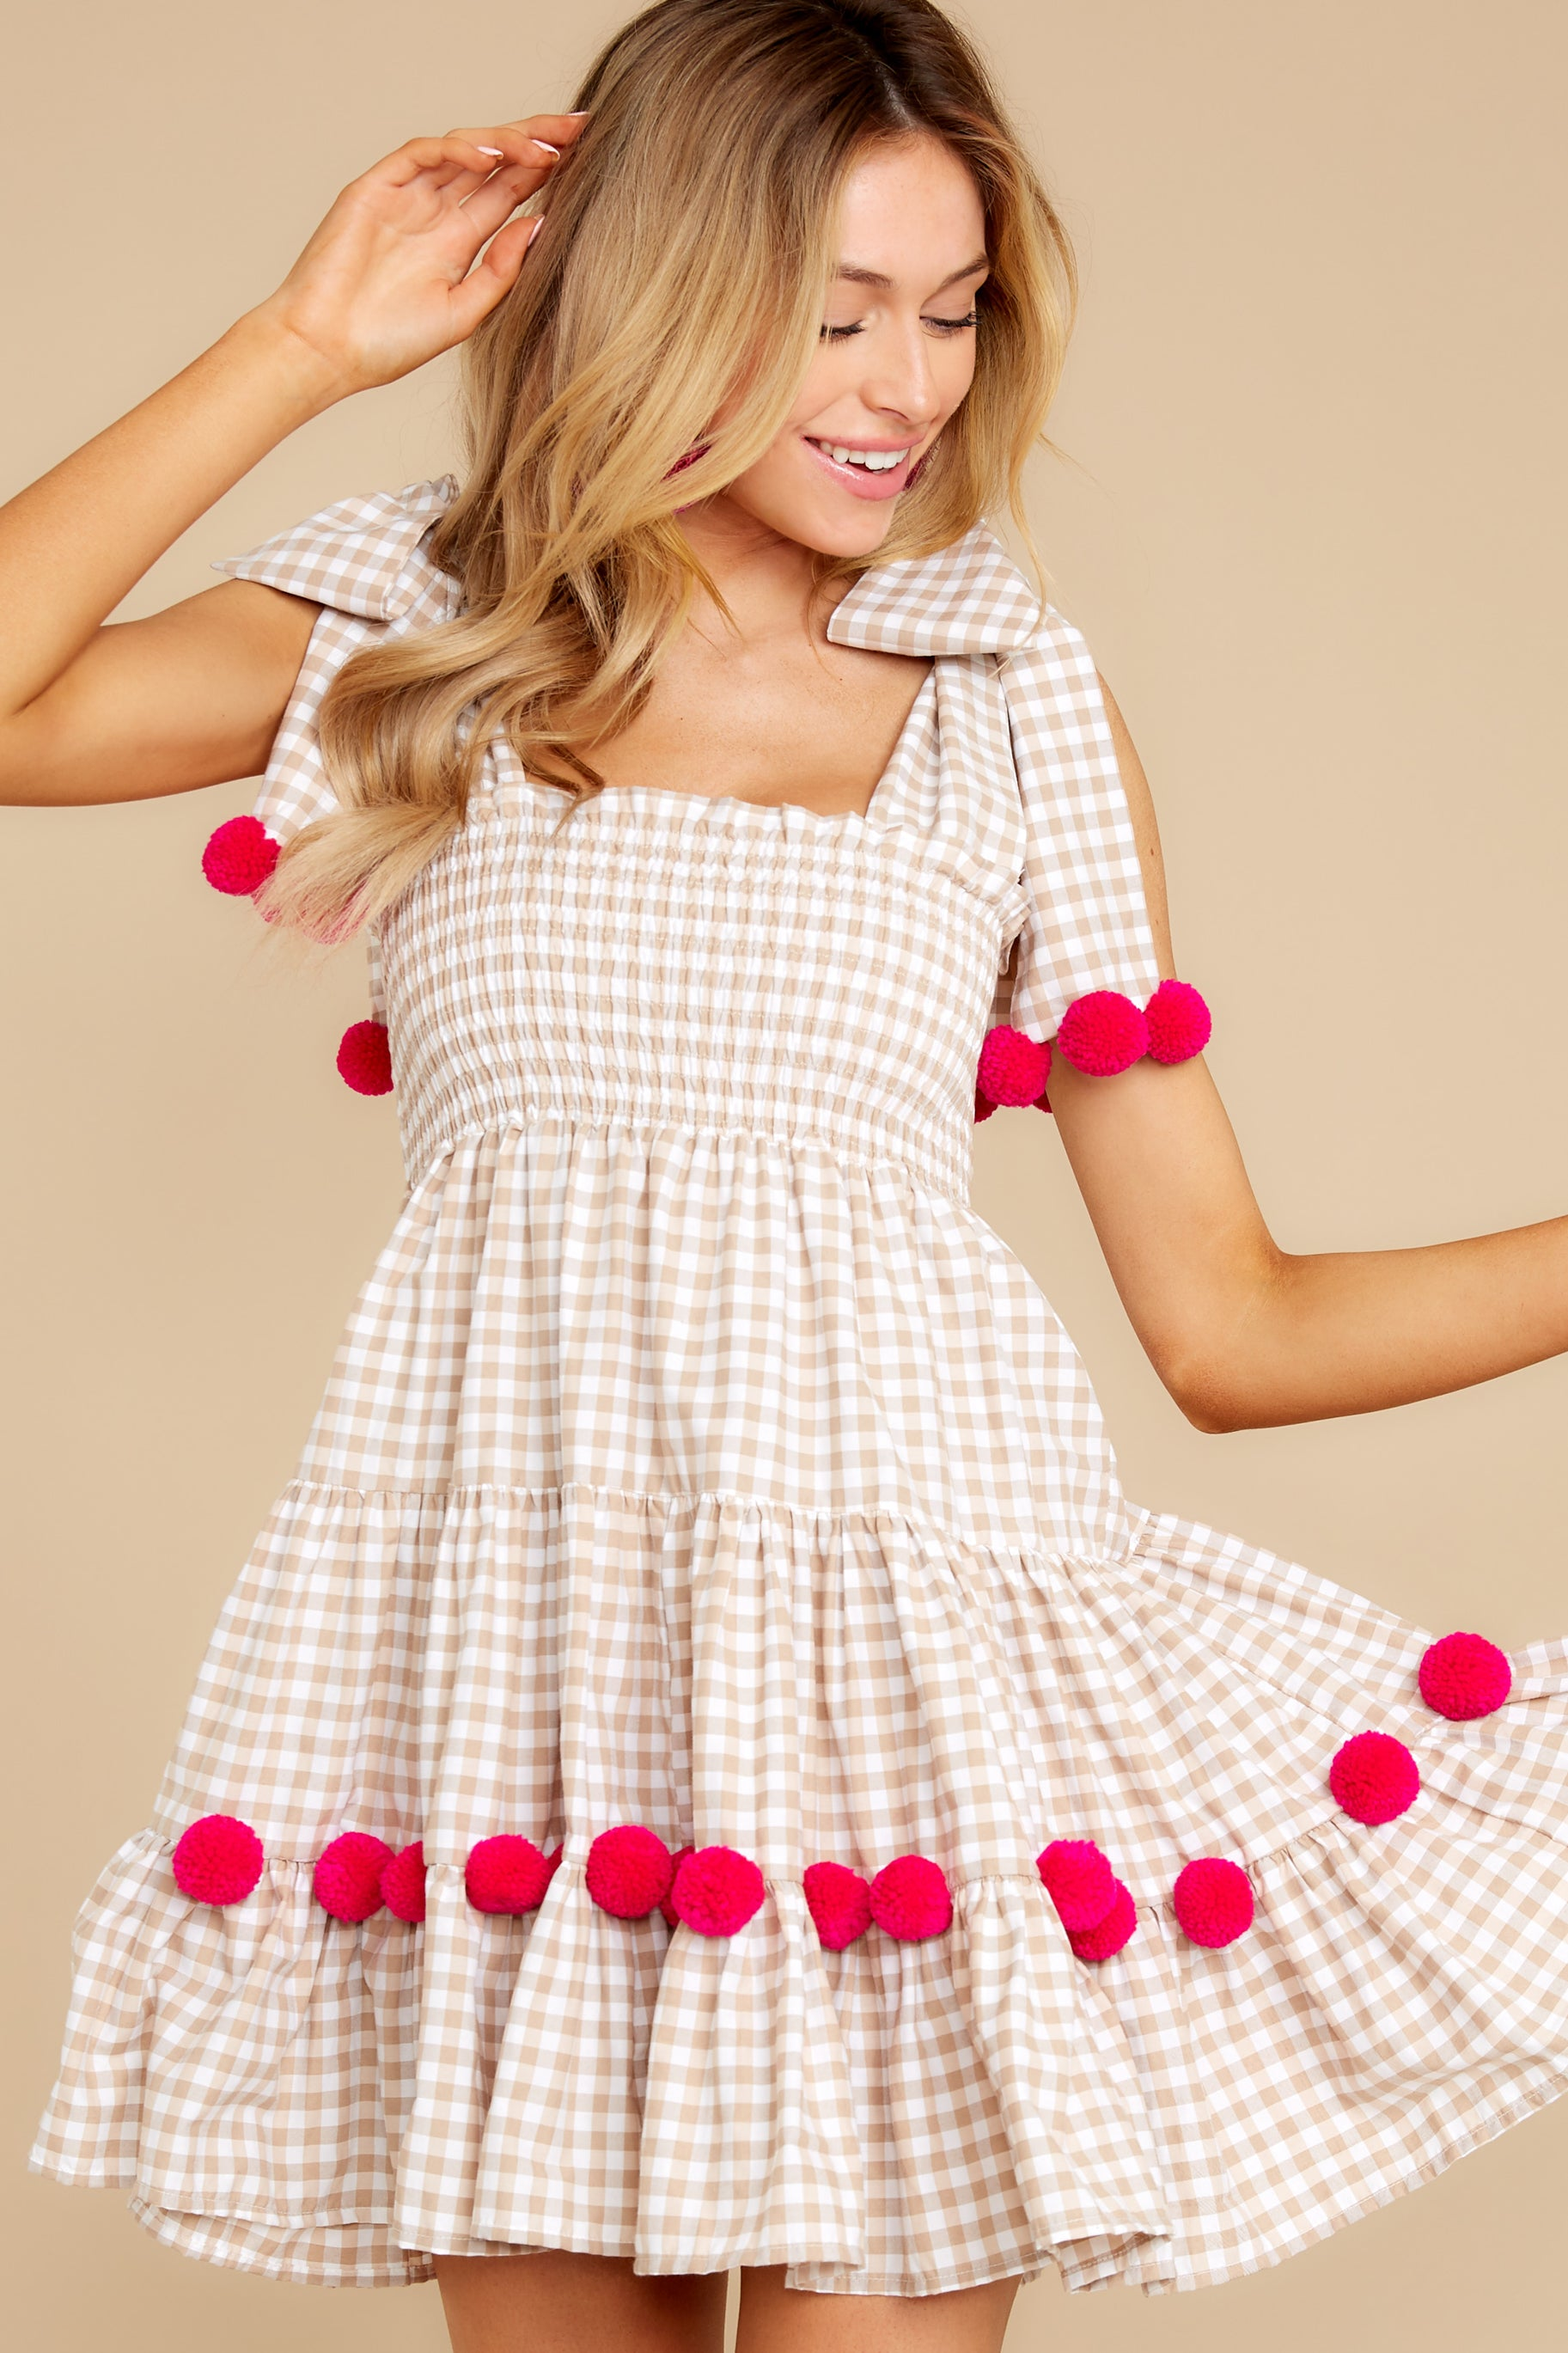 1 Pippa Beige Gingham Pom Pom Dress at reddress.com